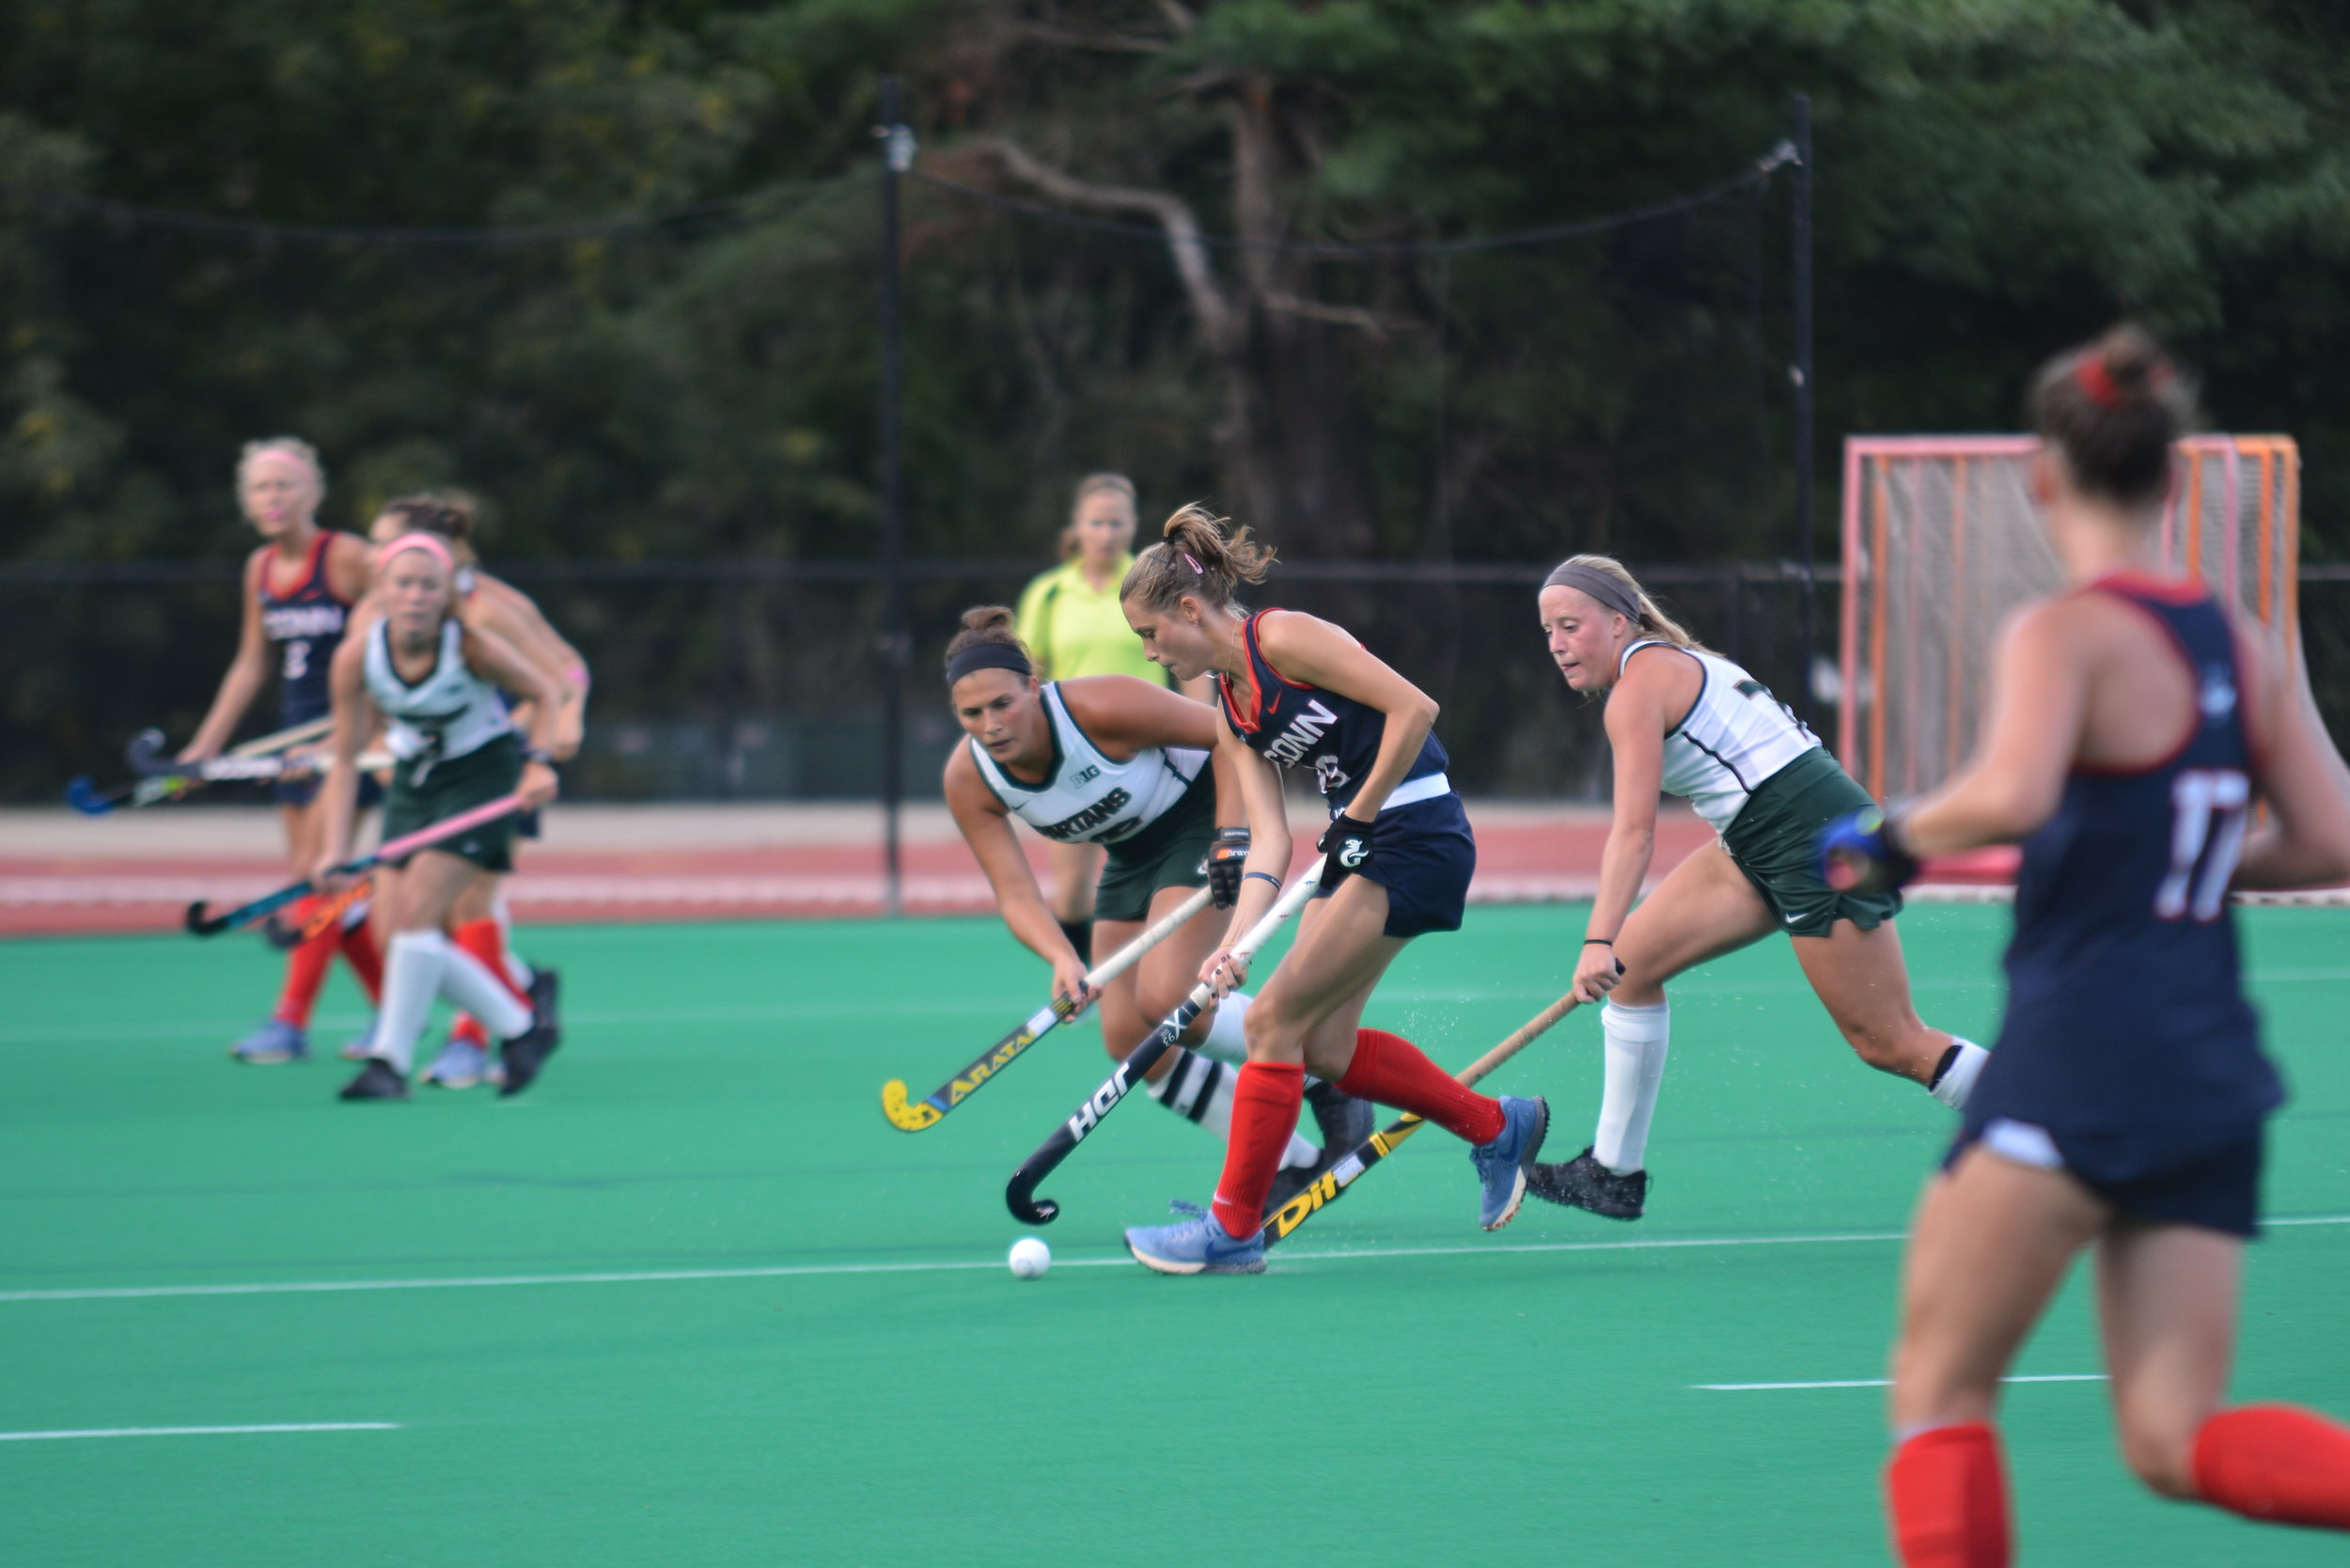 The UConn Huskies took down the Michigan State Spartans 5-0 last Friday. They look to continue their winning streak with their next home game against Quinnipiac on 9/15. (File Photo/The Daily Campus)